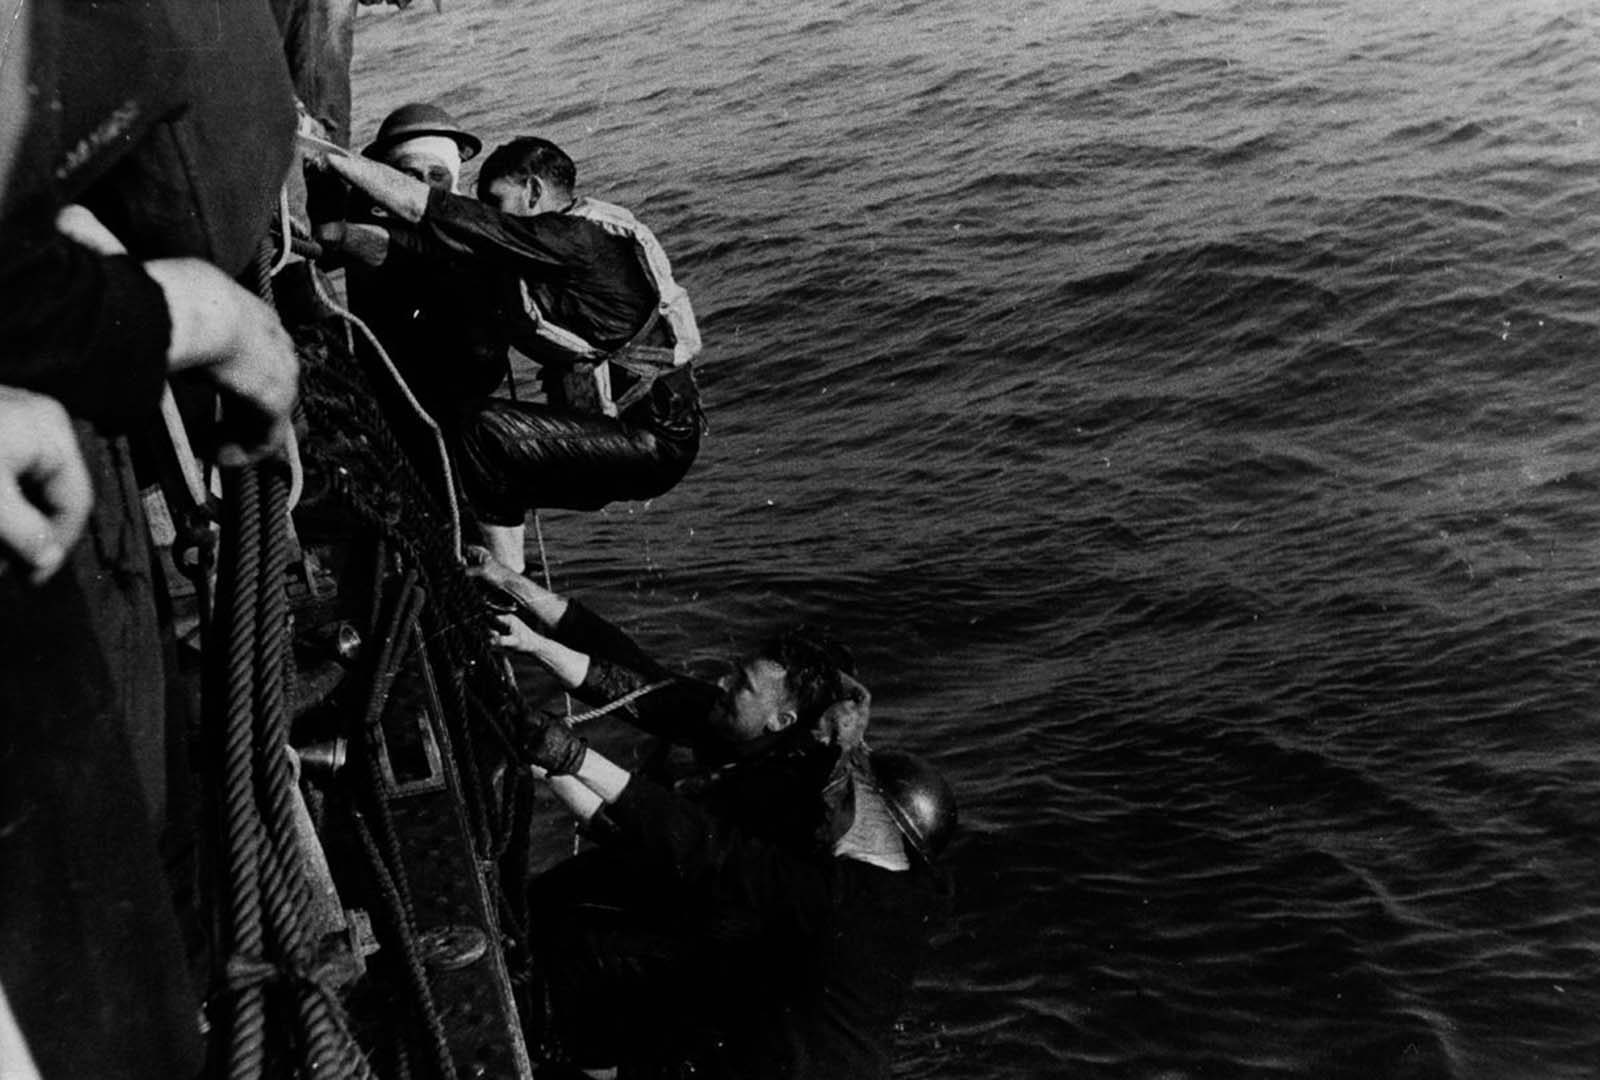 A British ship rescues soldiers from a landing craft sunk during the evacuation.